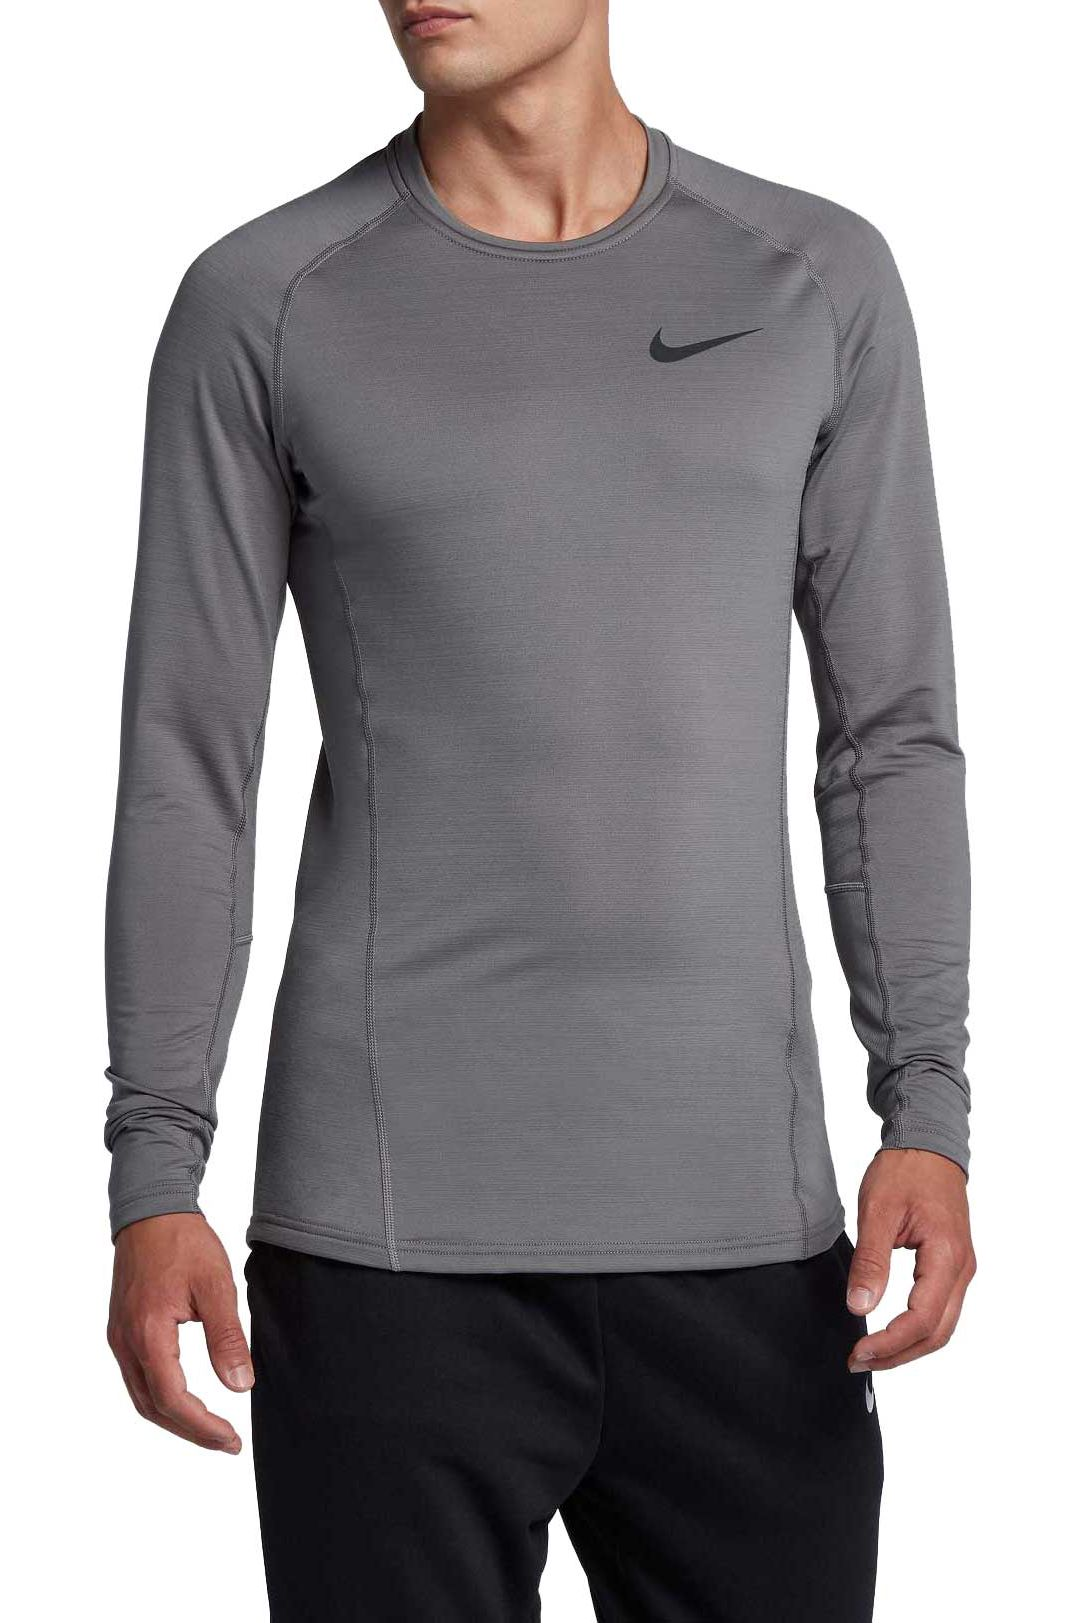 071ea06f5d357 Nike Men's Pro Therma Dri-FIT Long Sleeve Shirt. noImageFound. Previous